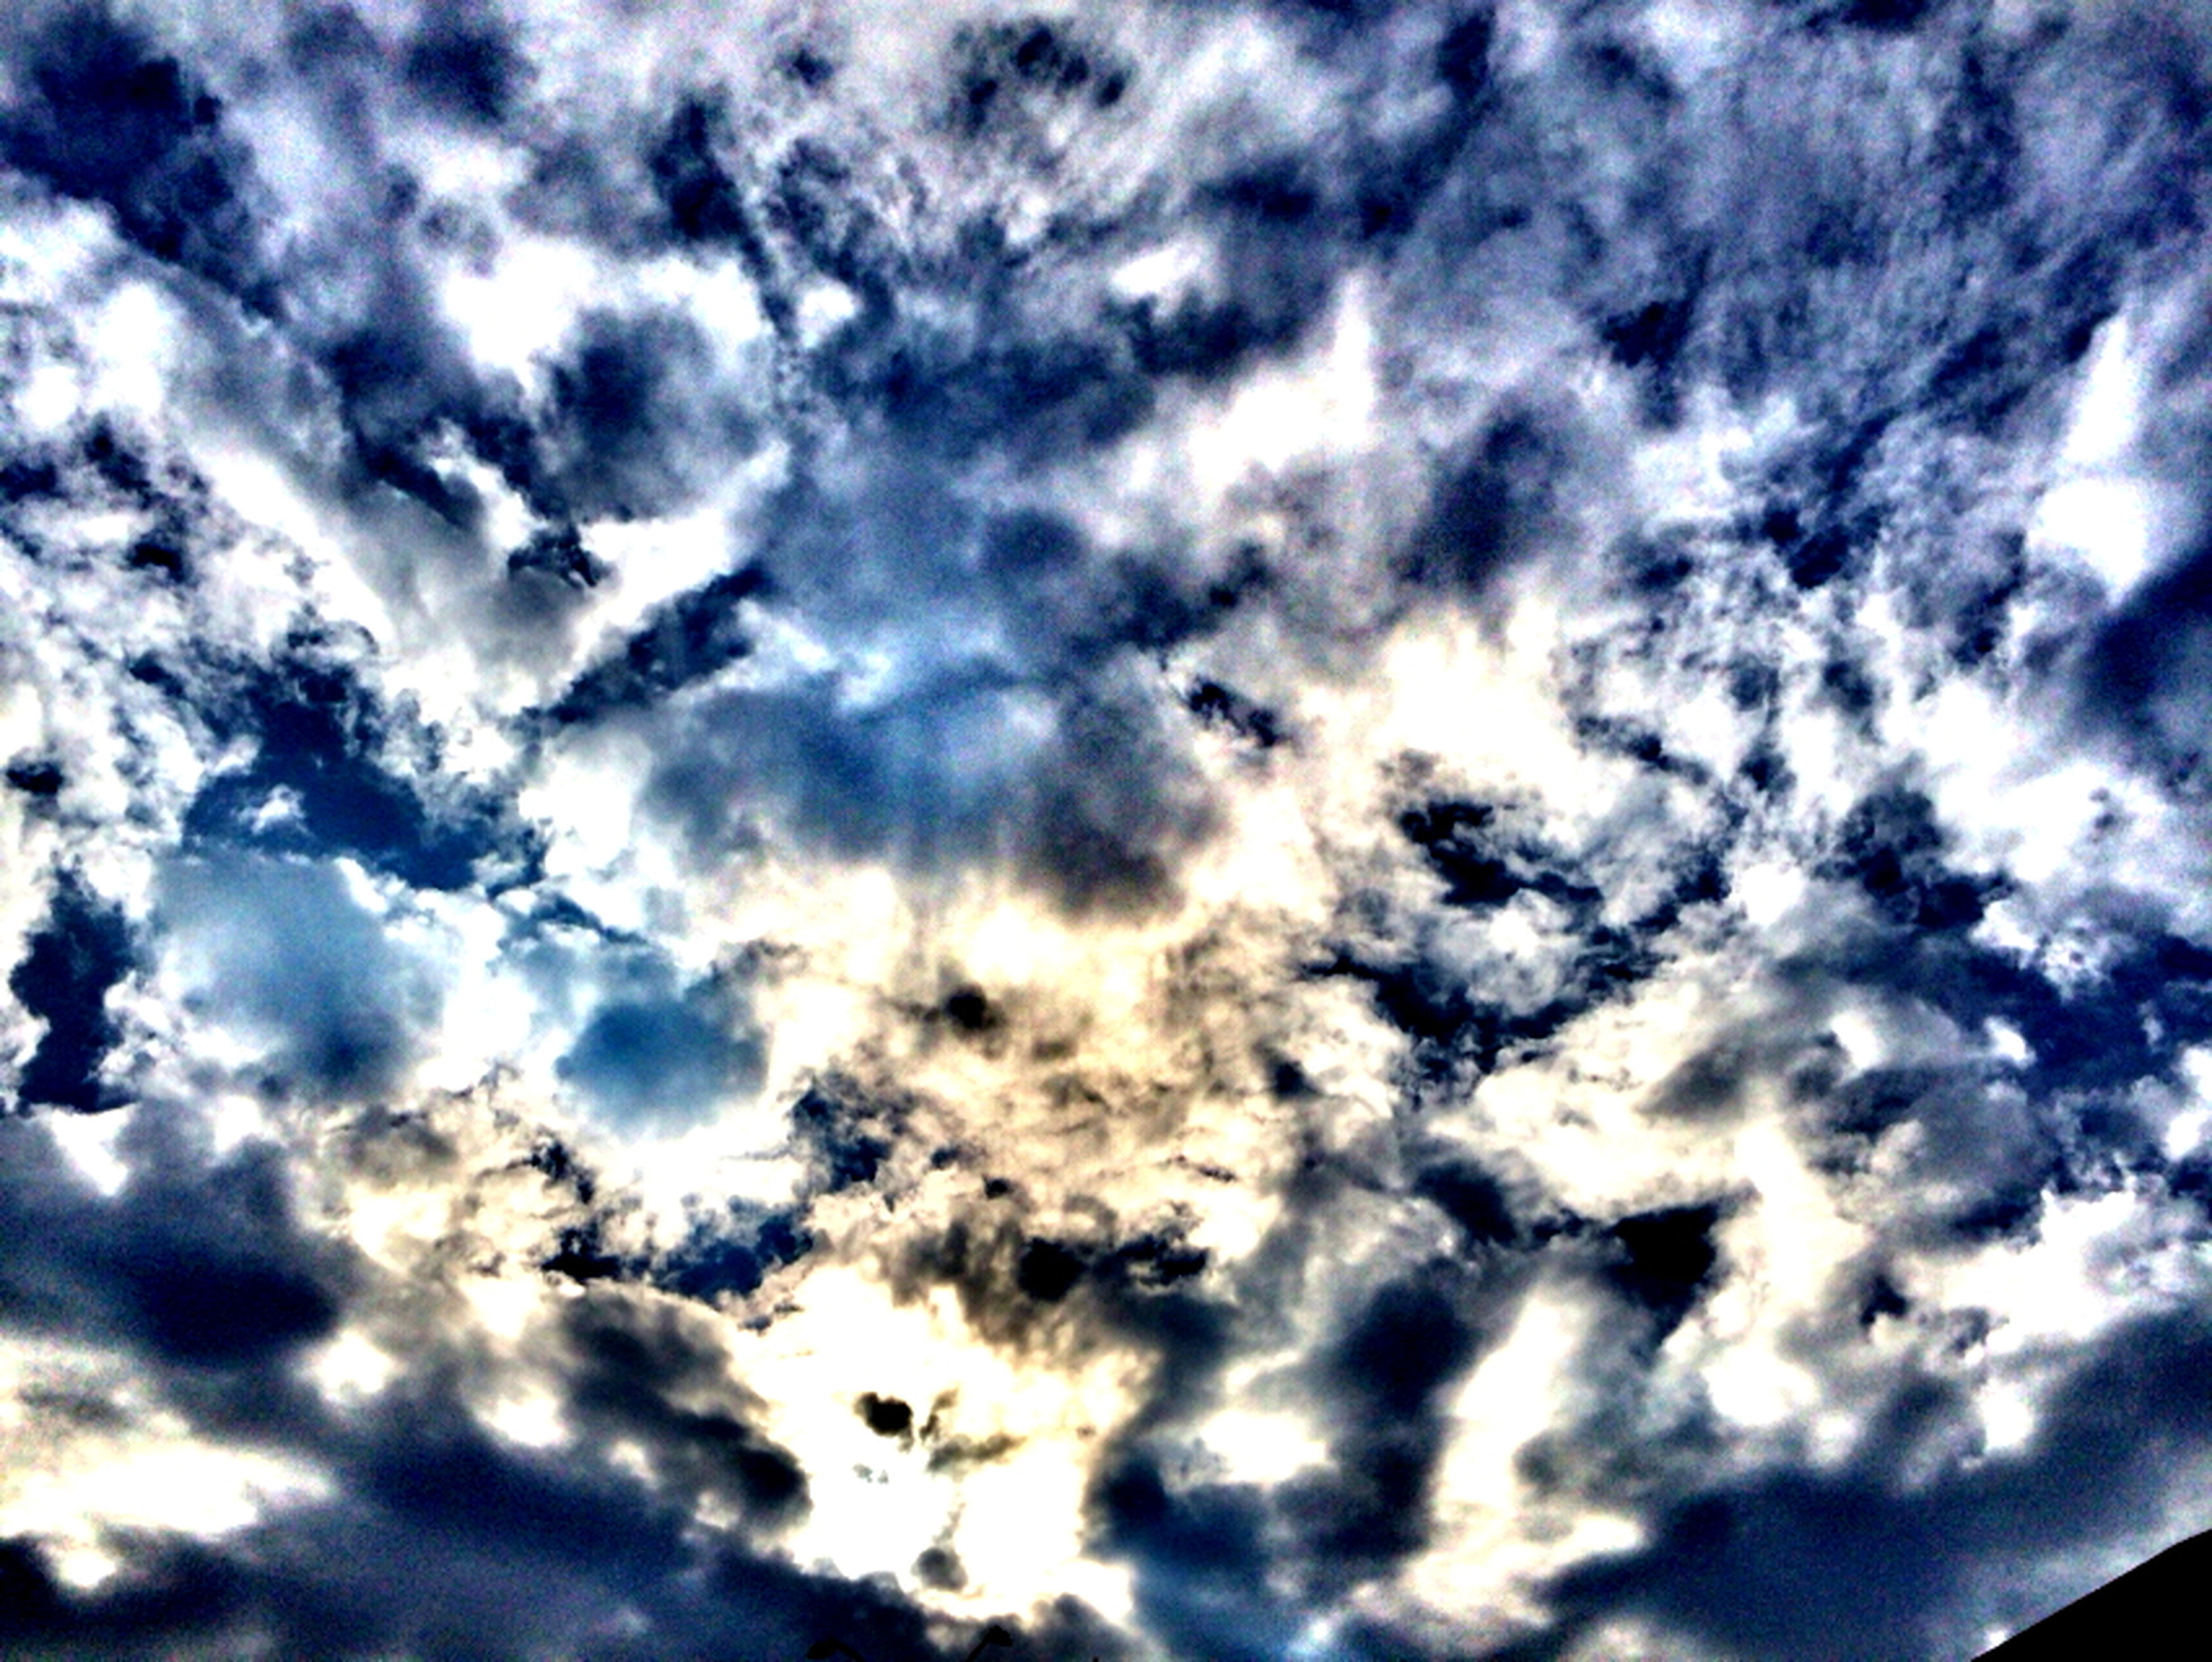 low angle view, sky, cloud - sky, cloudy, sky only, beauty in nature, nature, cloudscape, cloud, tranquility, backgrounds, scenics, blue, full frame, tranquil scene, weather, outdoors, idyllic, no people, majestic